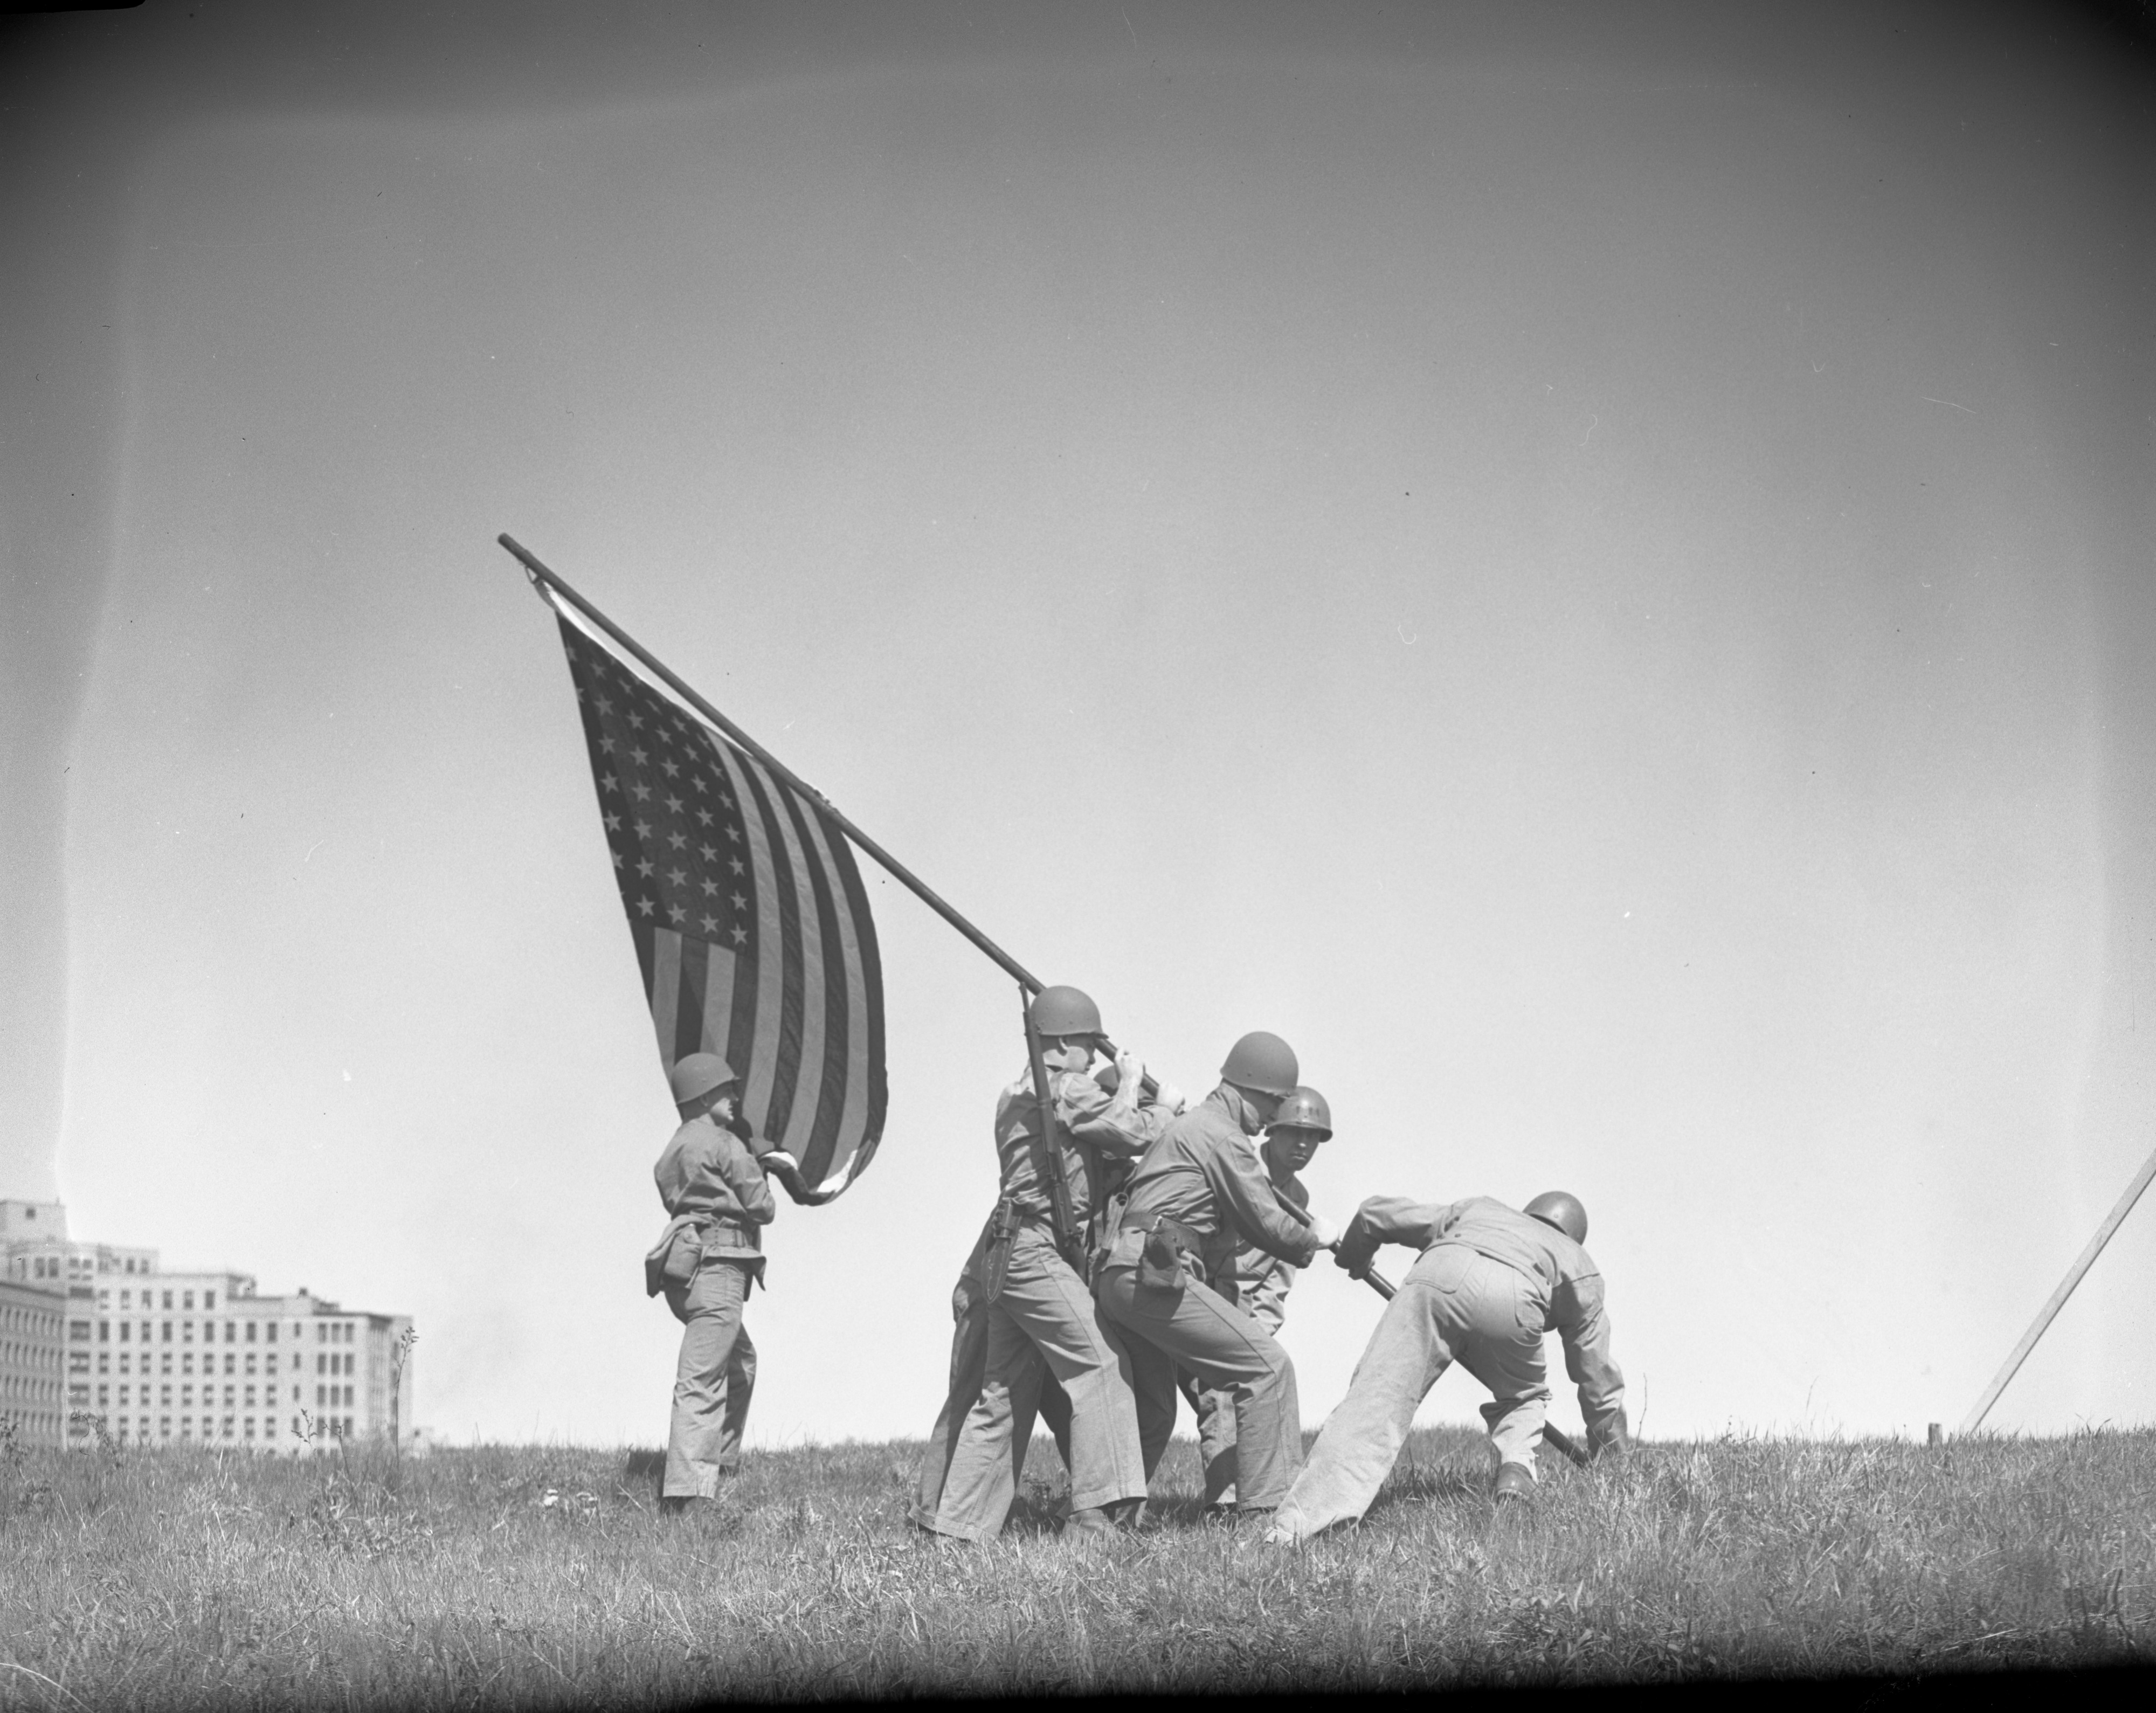 Marines simulate Iwo Jima flag raising for 7th War Loan drive, May 1945 image